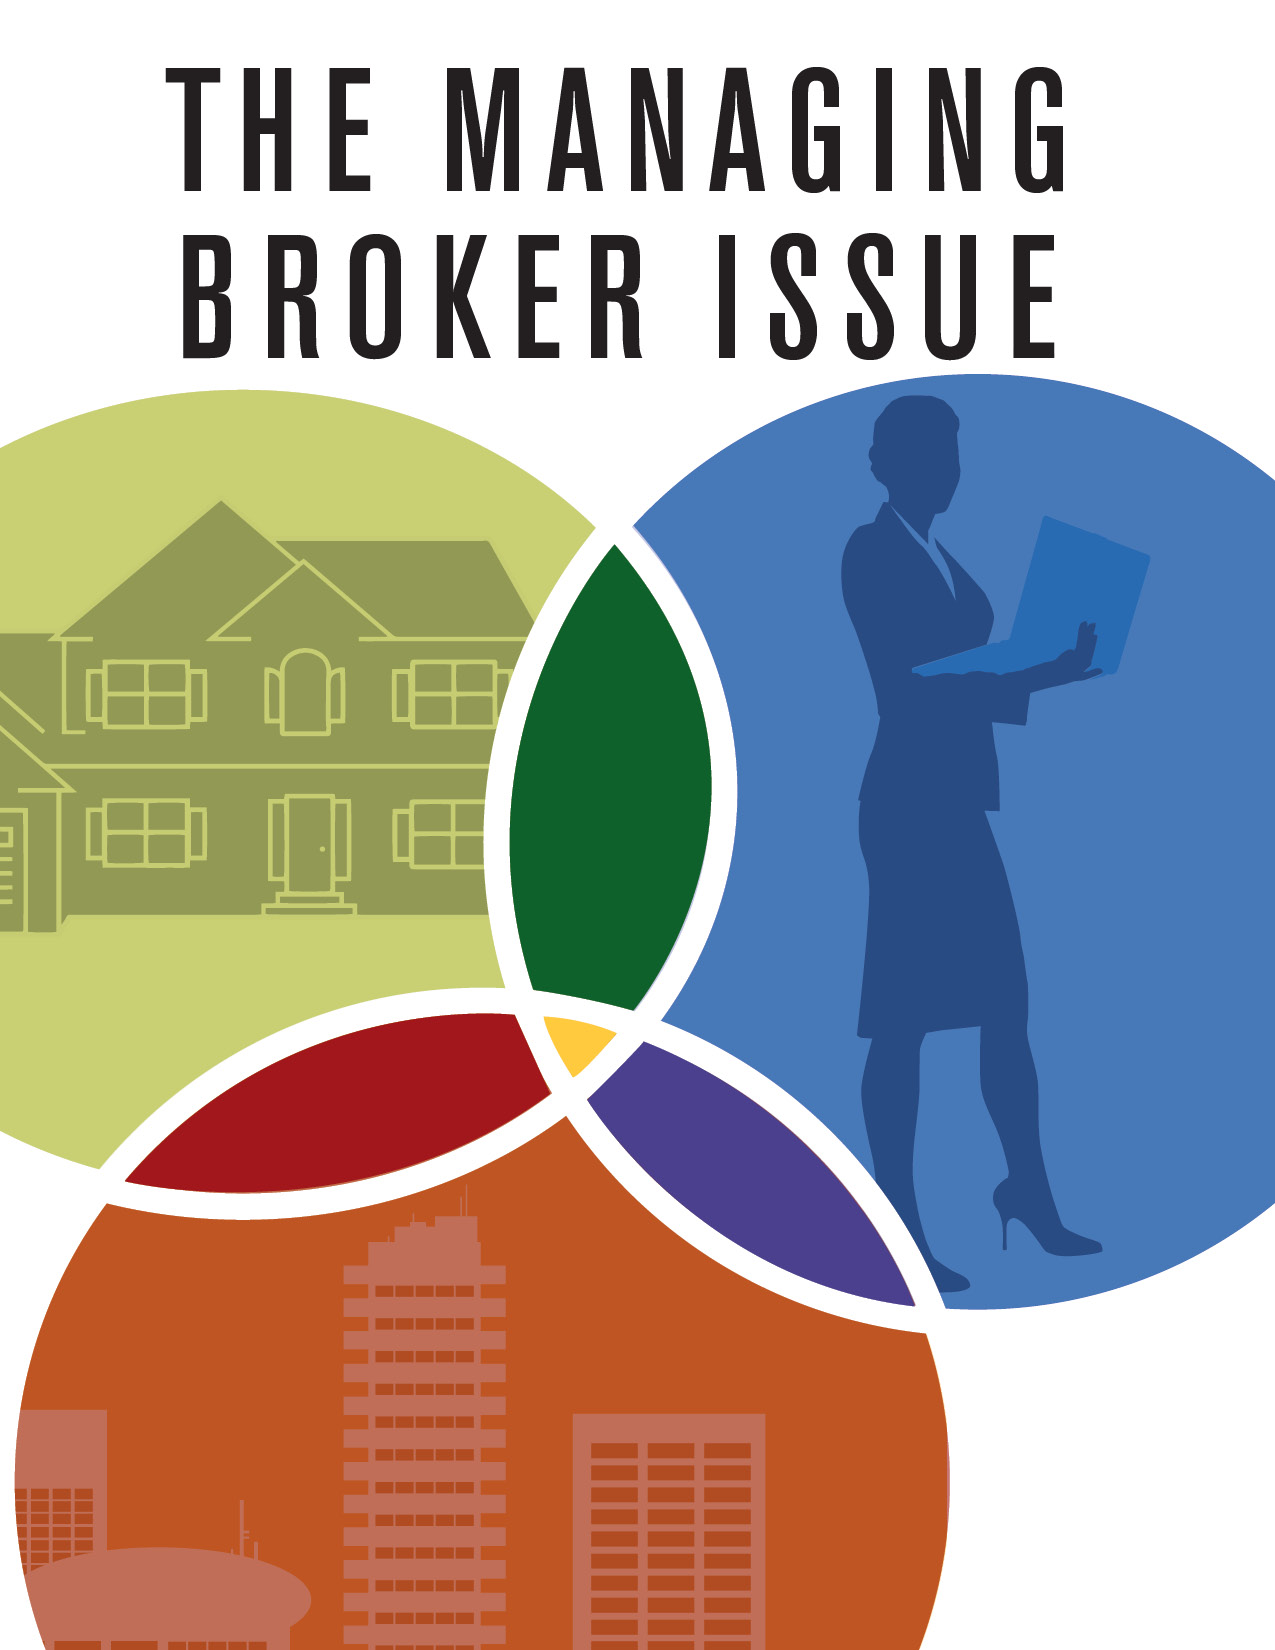 The Managing Broker Issue - 4.20.14